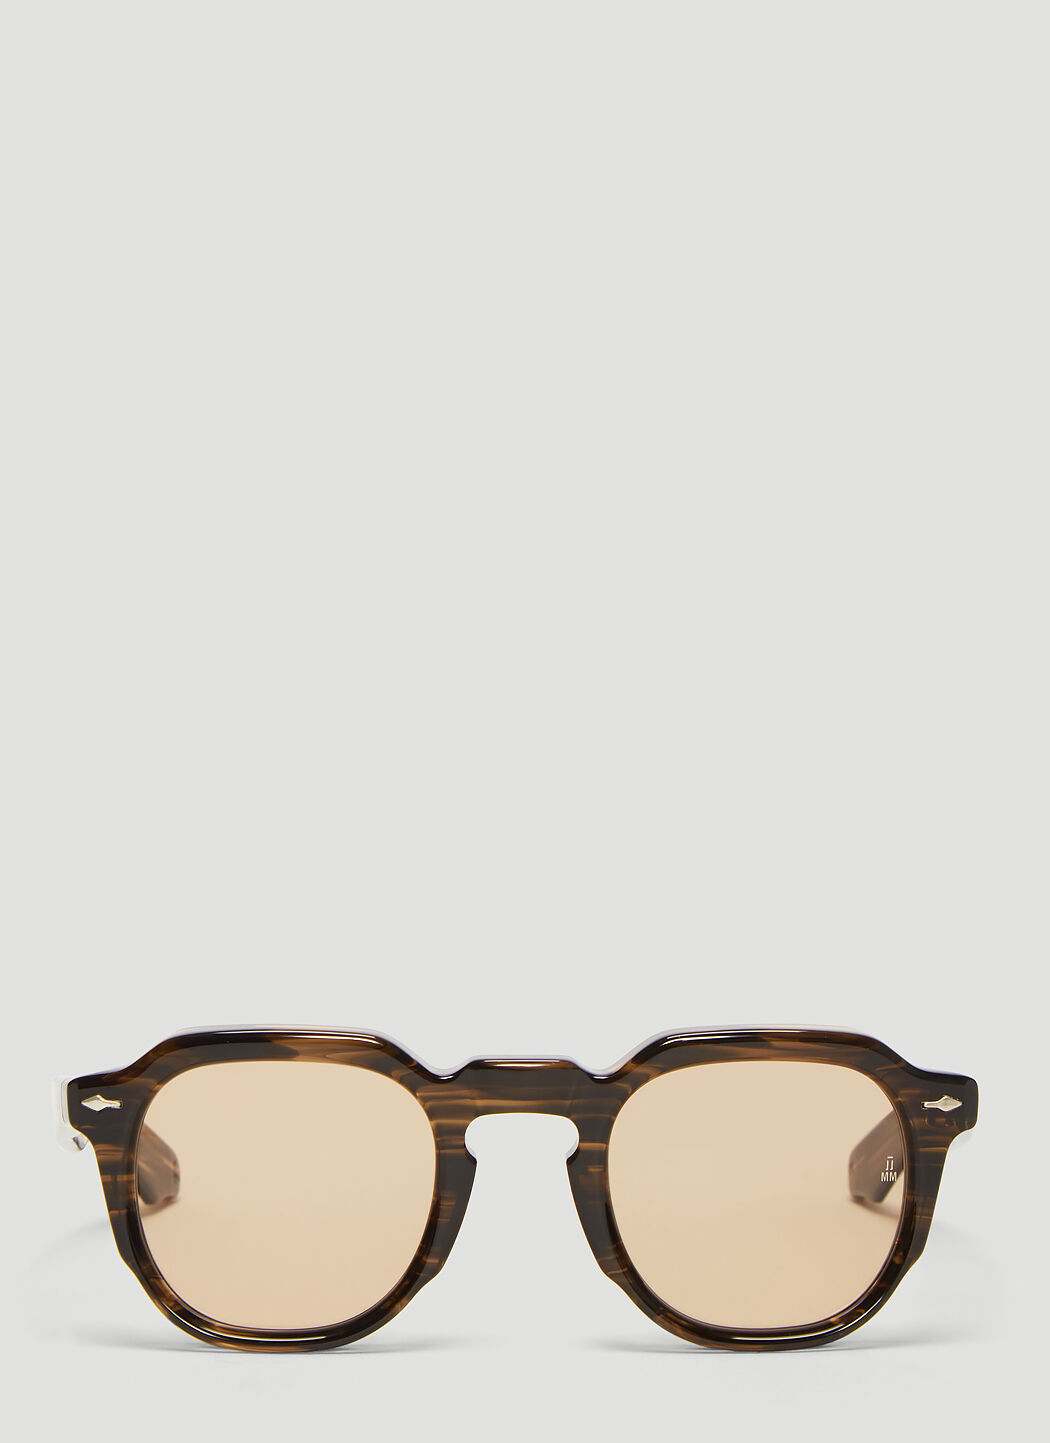 Jacques Marie Mage Sunglasses RIPLEY SUNGLASSES IN BROWN